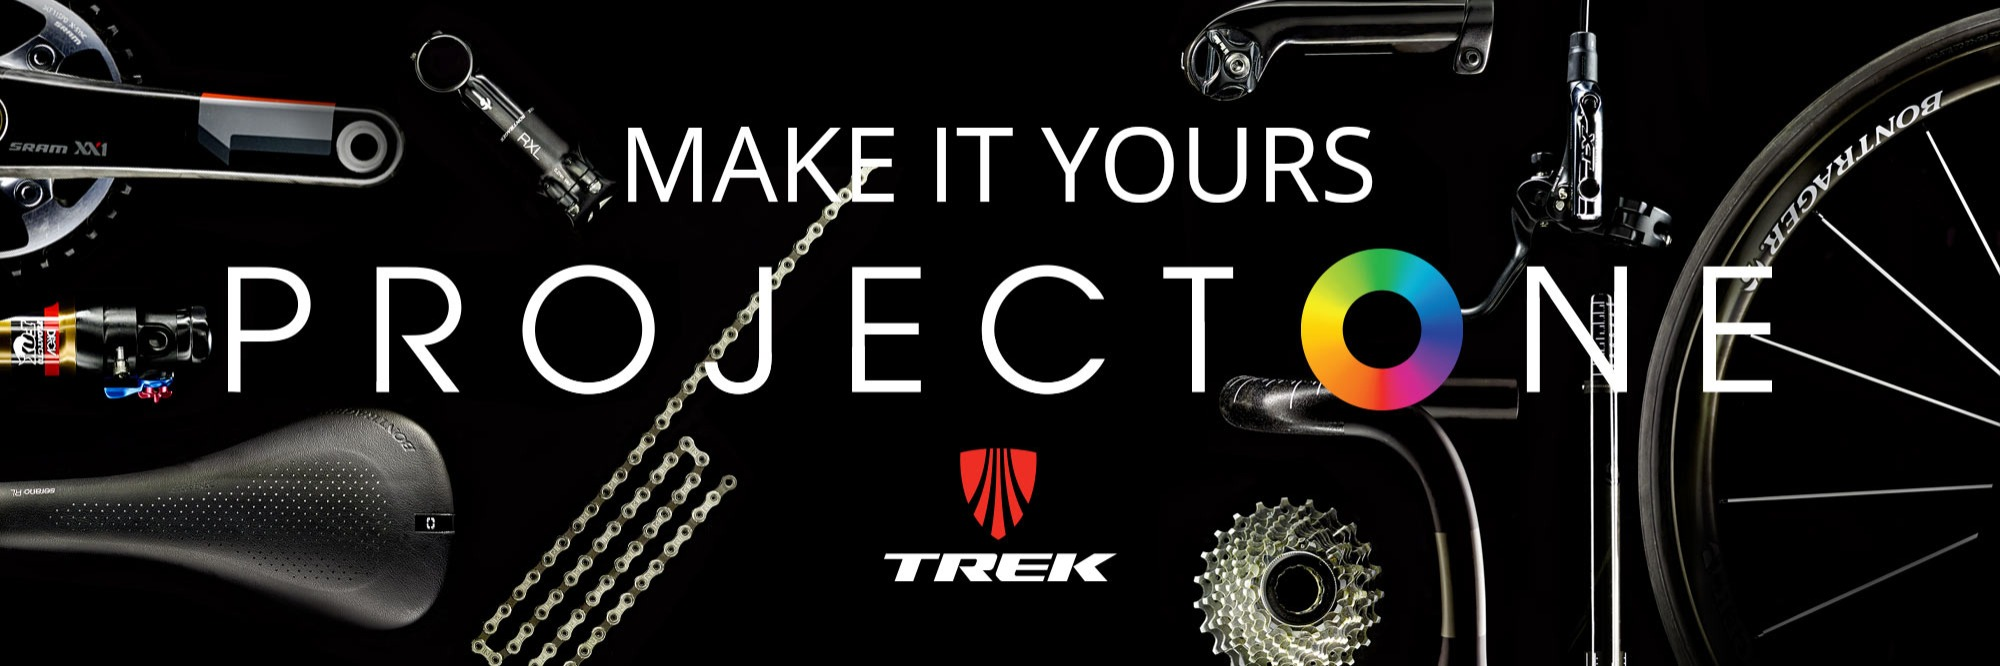 Trek Bicycle Project One